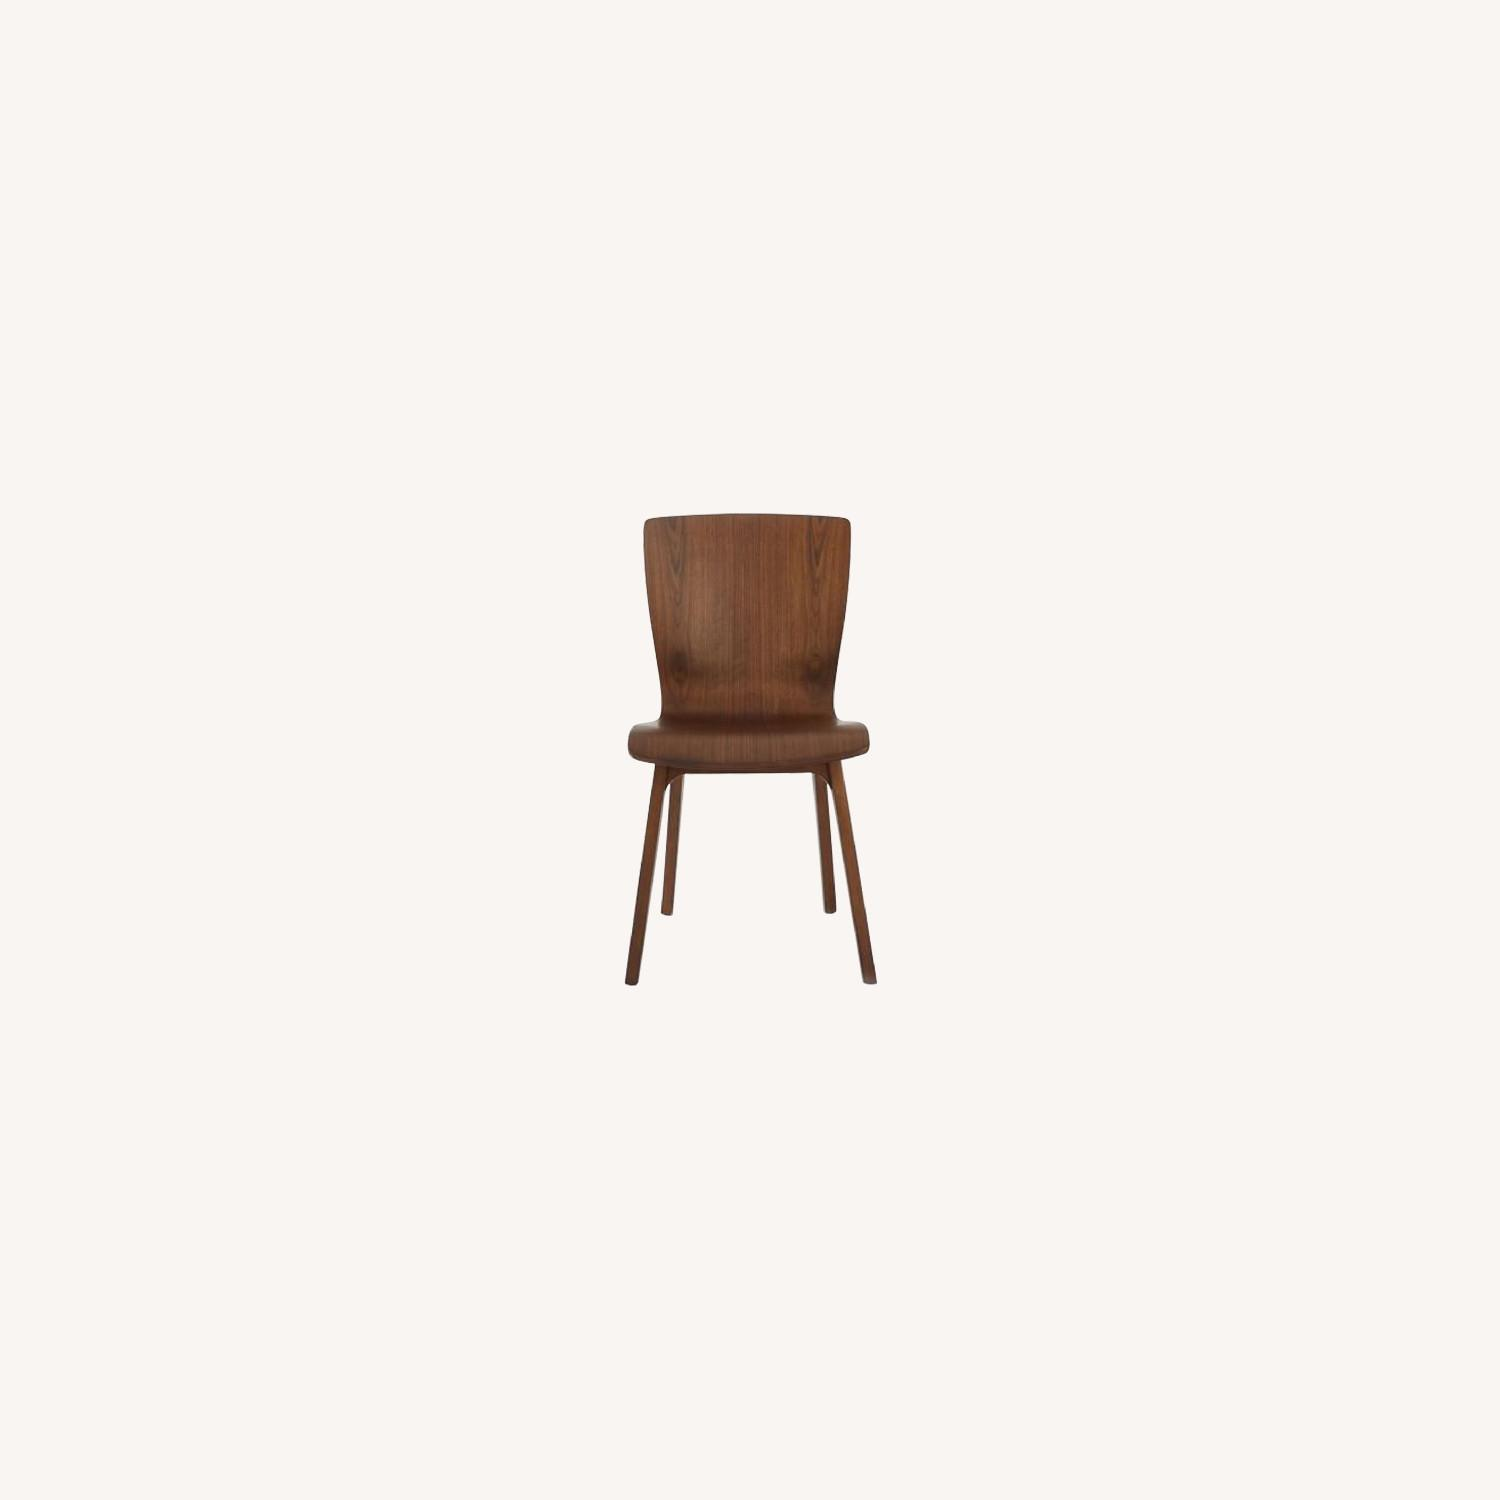 West Elm Crest Bentwood Dining Chairs (Set of 2) - image-0